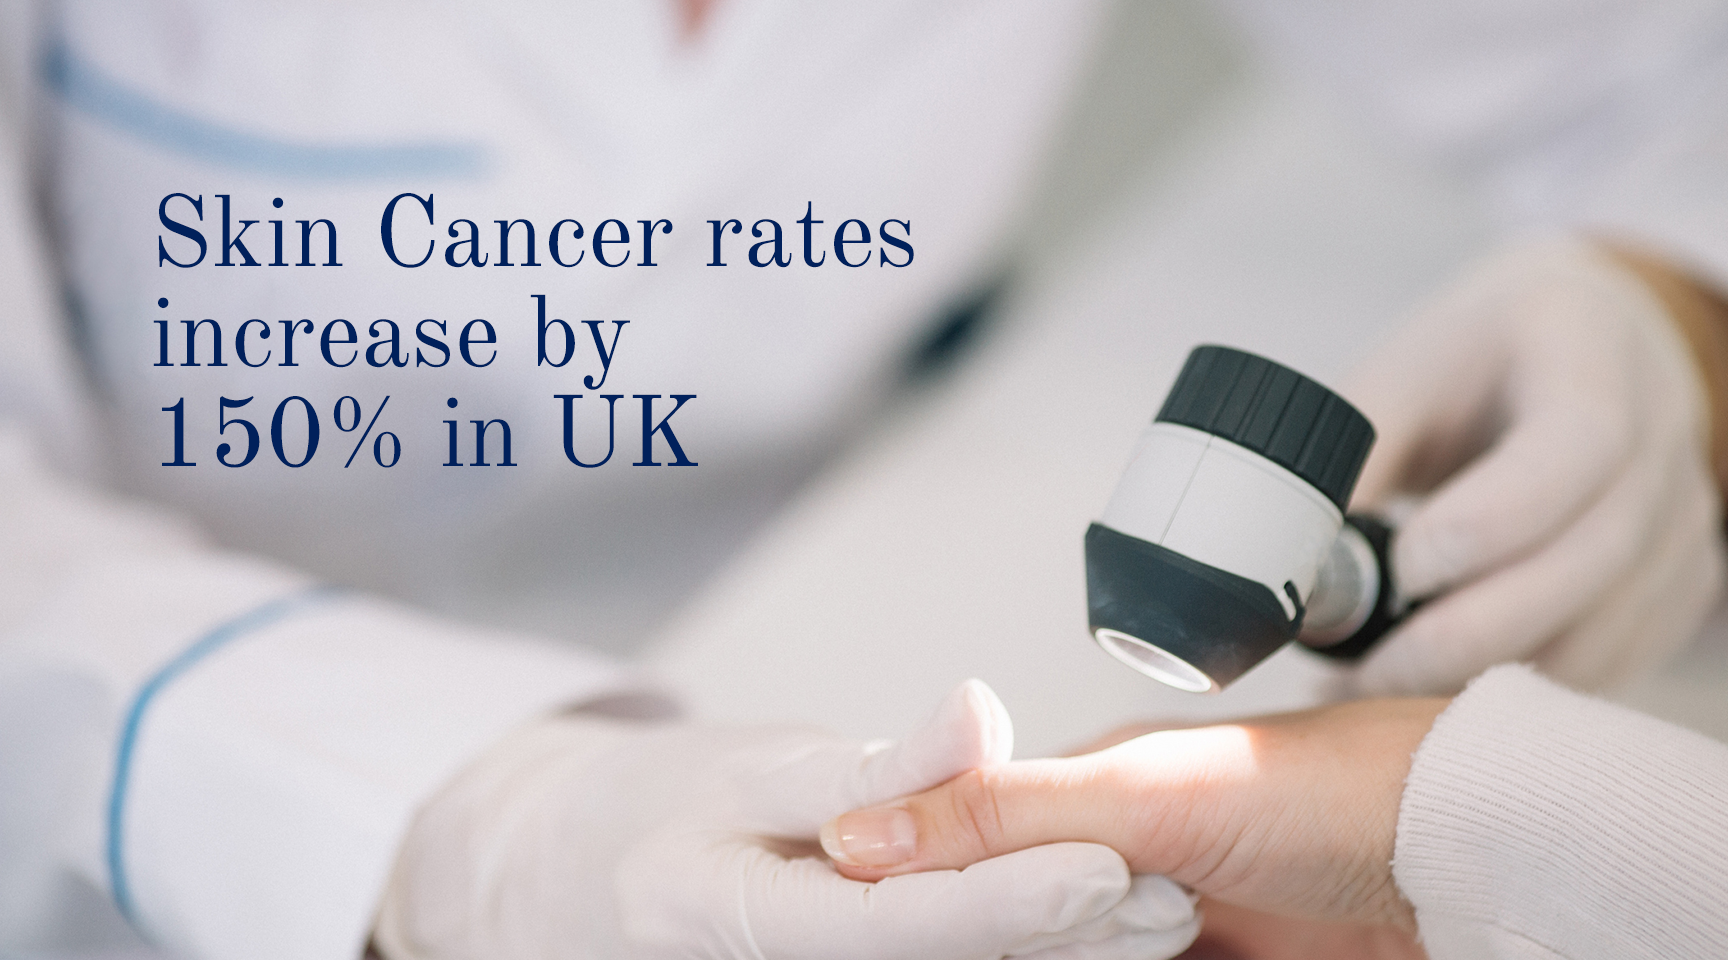 Skin Cancer rates increase 150% in UK